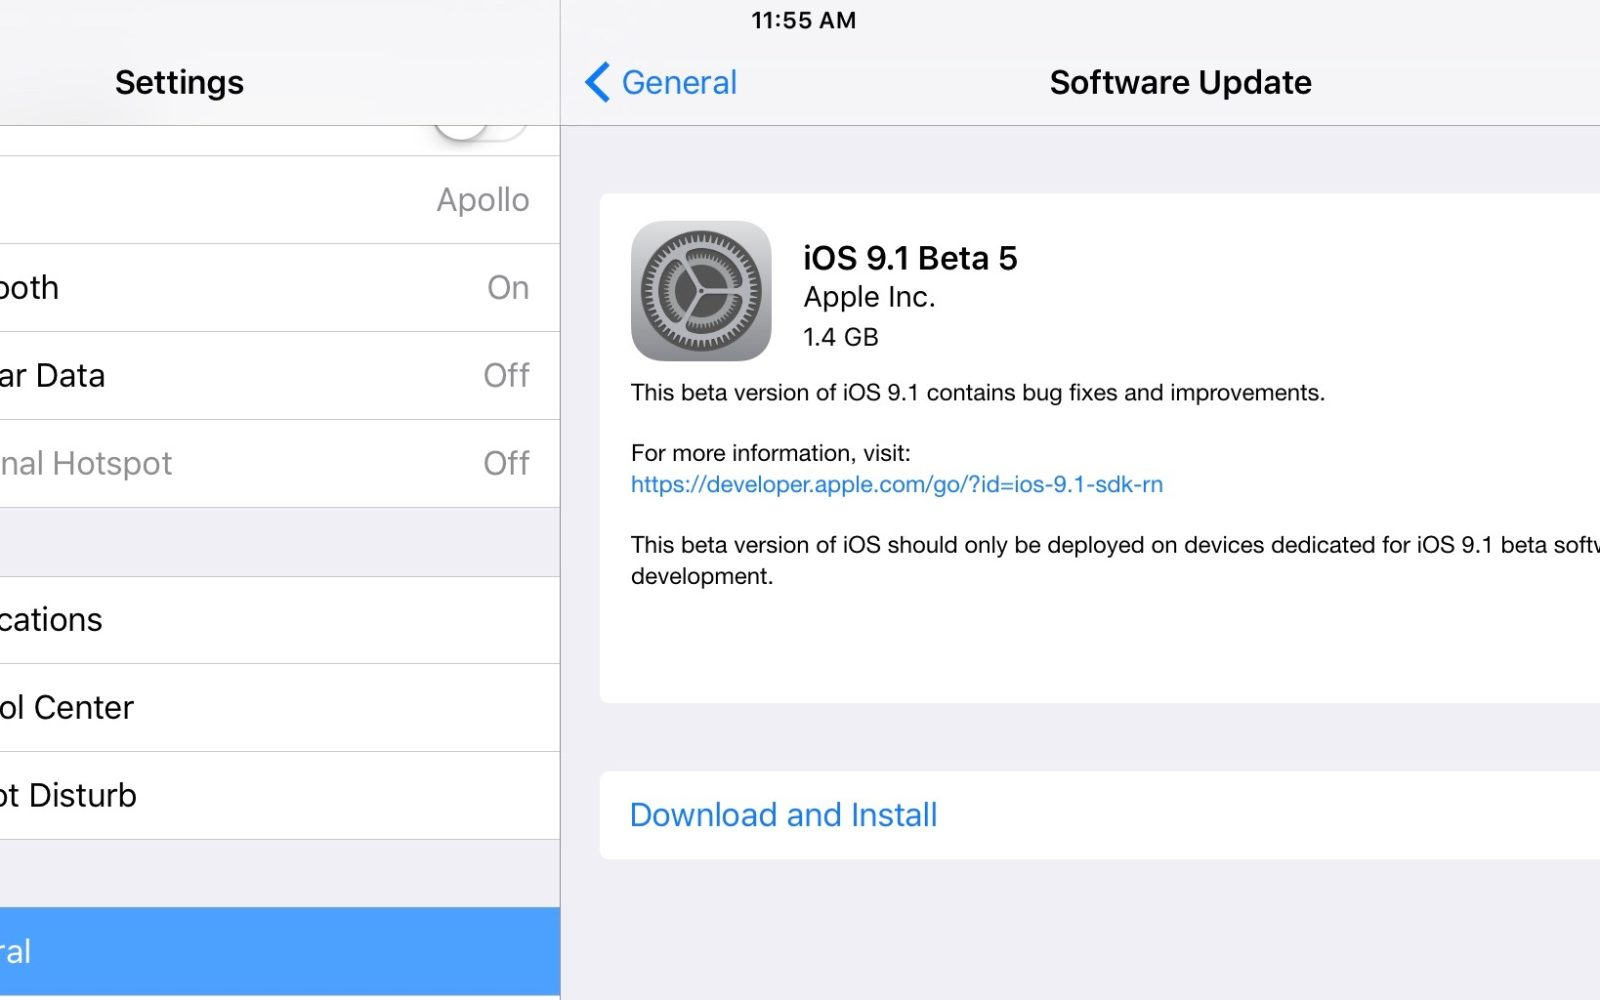 Apple releases iOS 9 1 beta 5 for developers and public beta